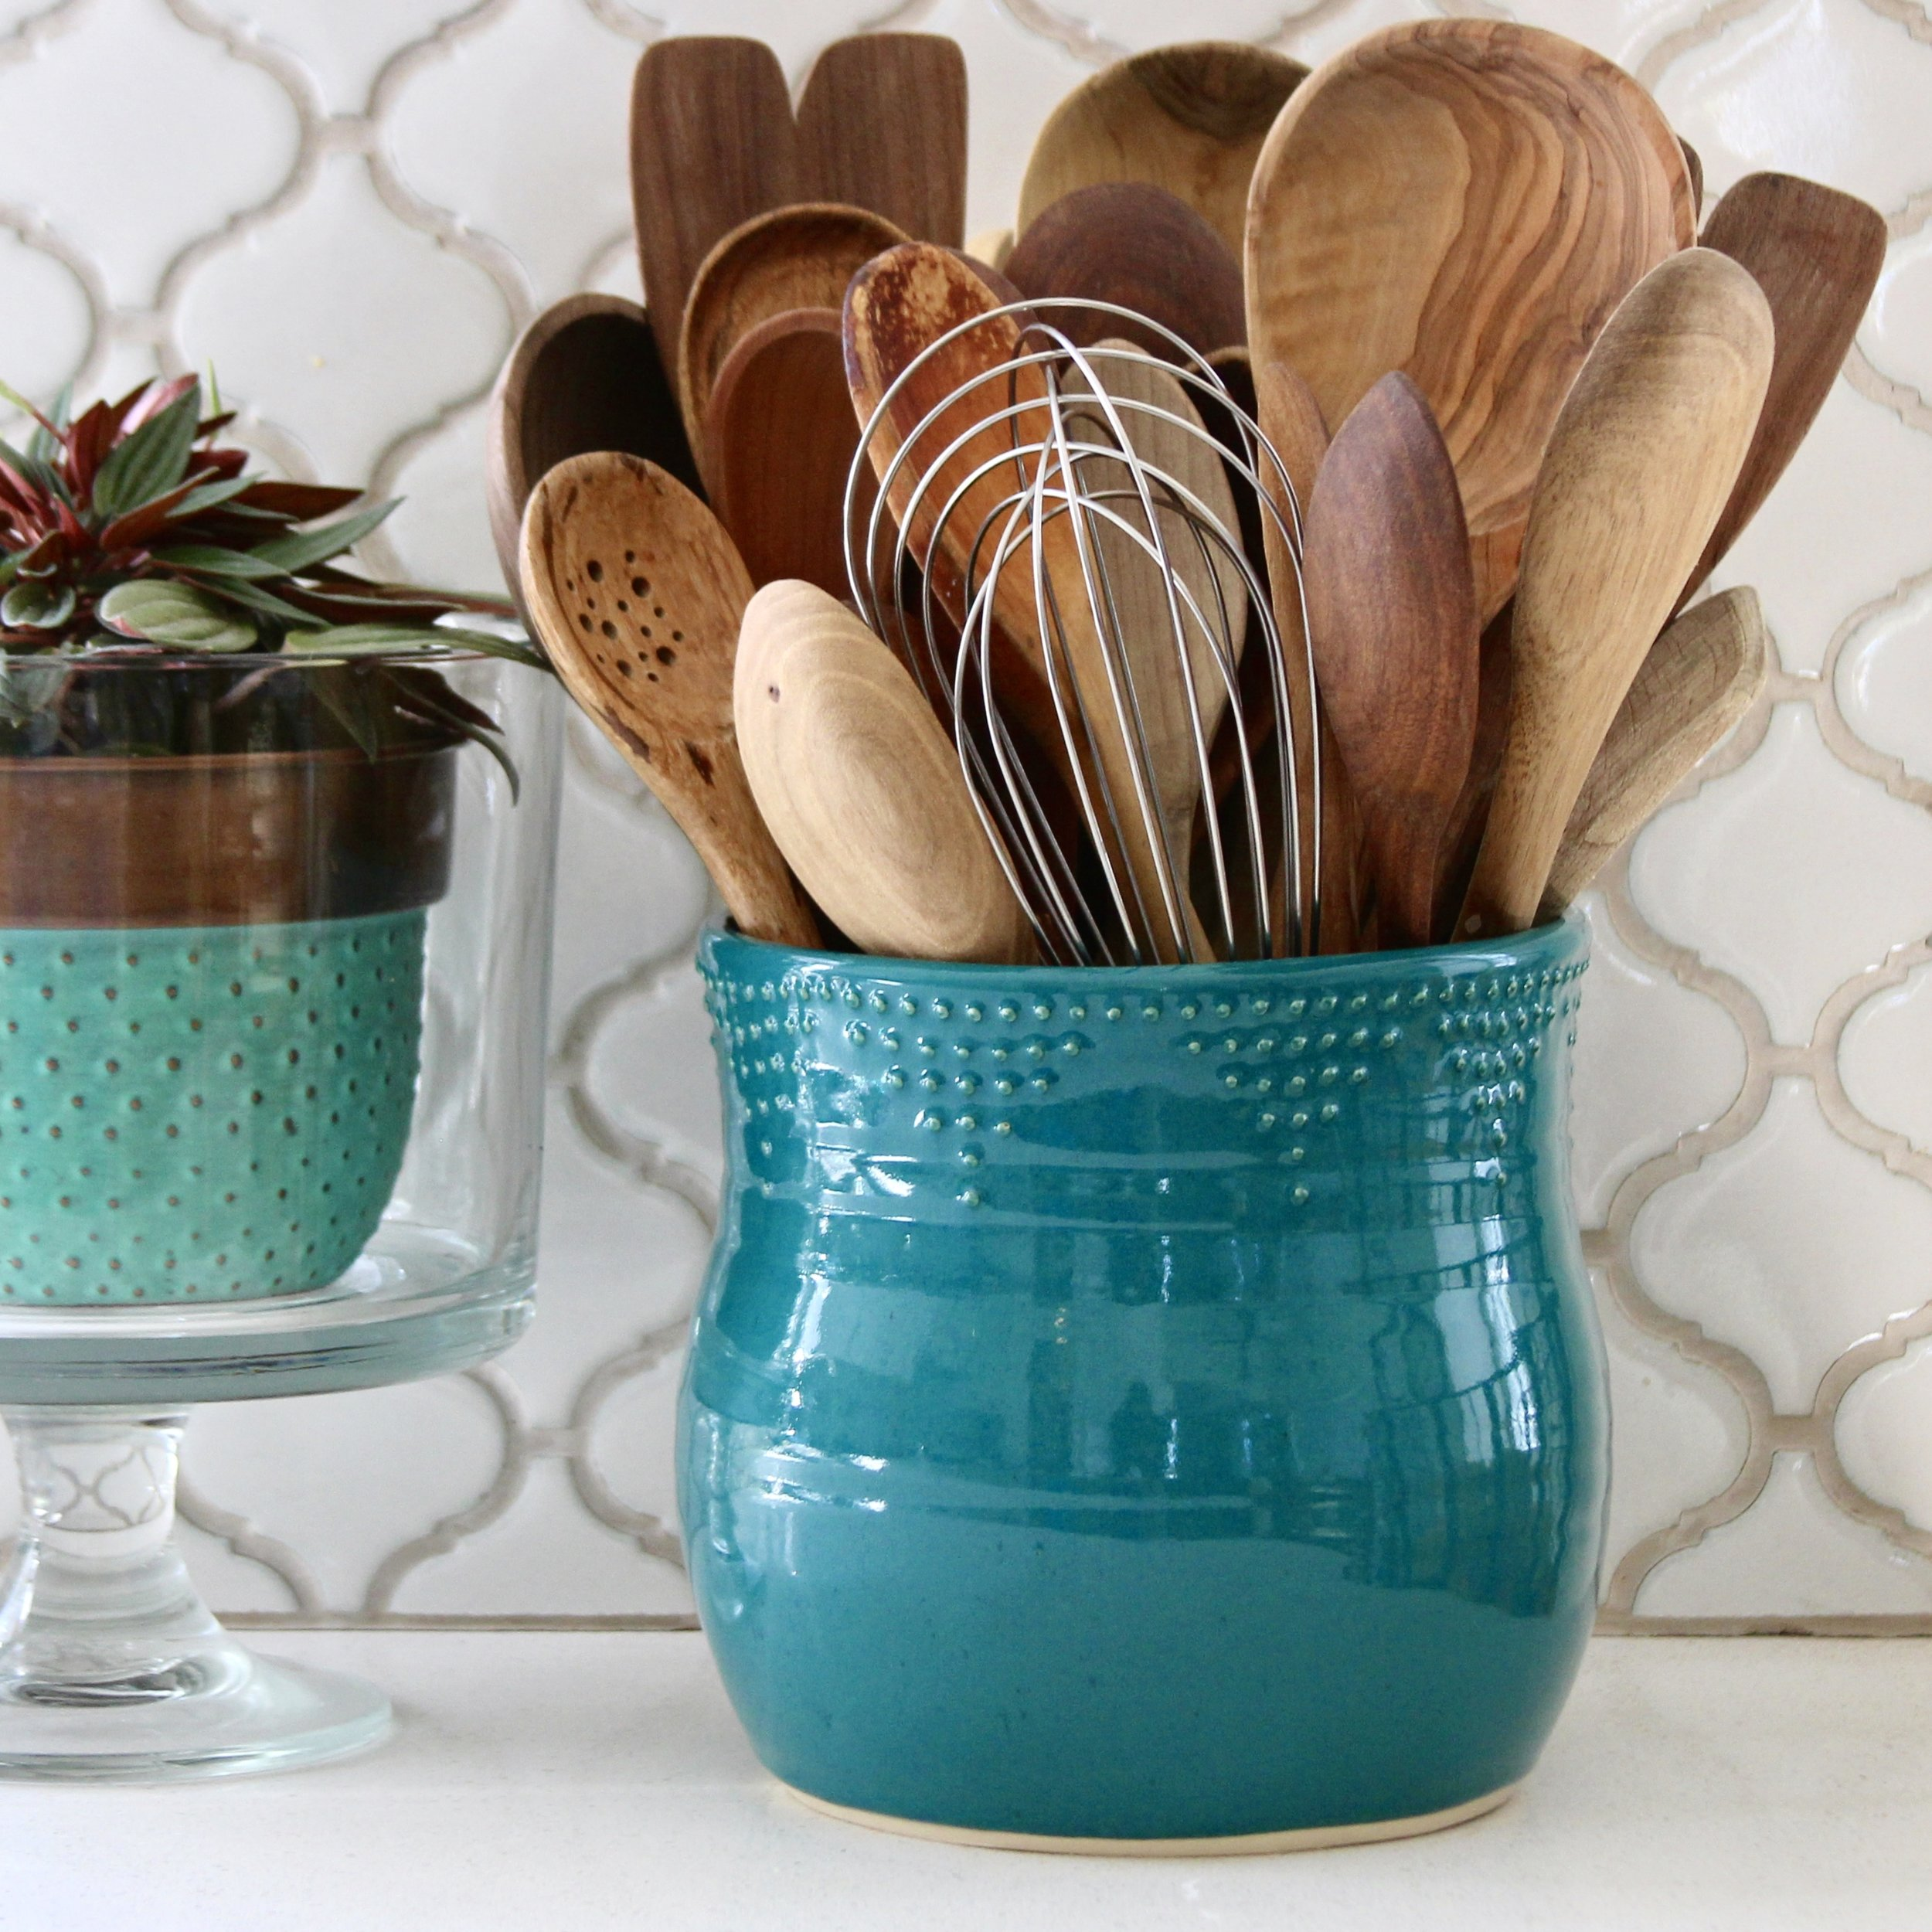 Extra Large Utensil Holder in Dark Teal